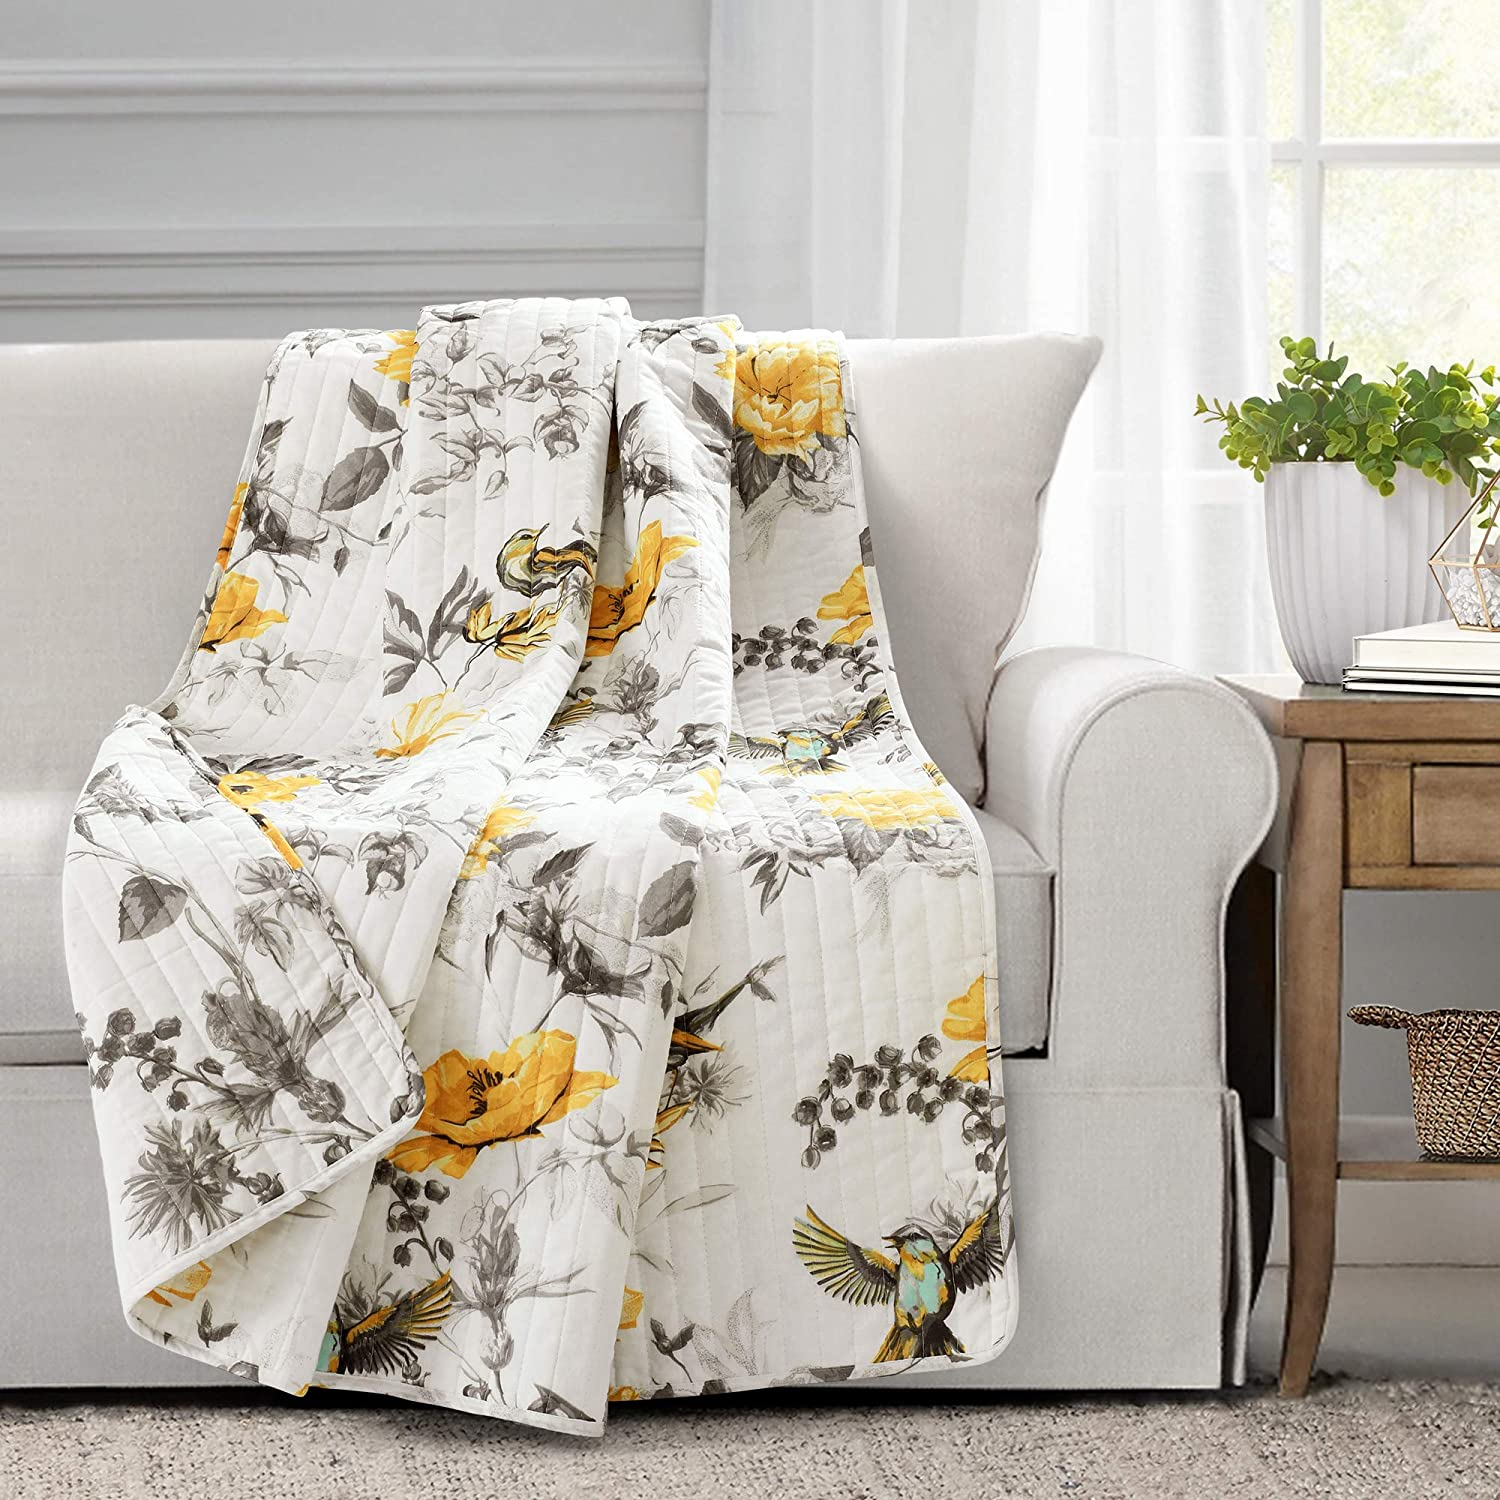 "Lush Decor, Yellow and Gray Penrose Floral Throw Blanket, 60"" x 50"""